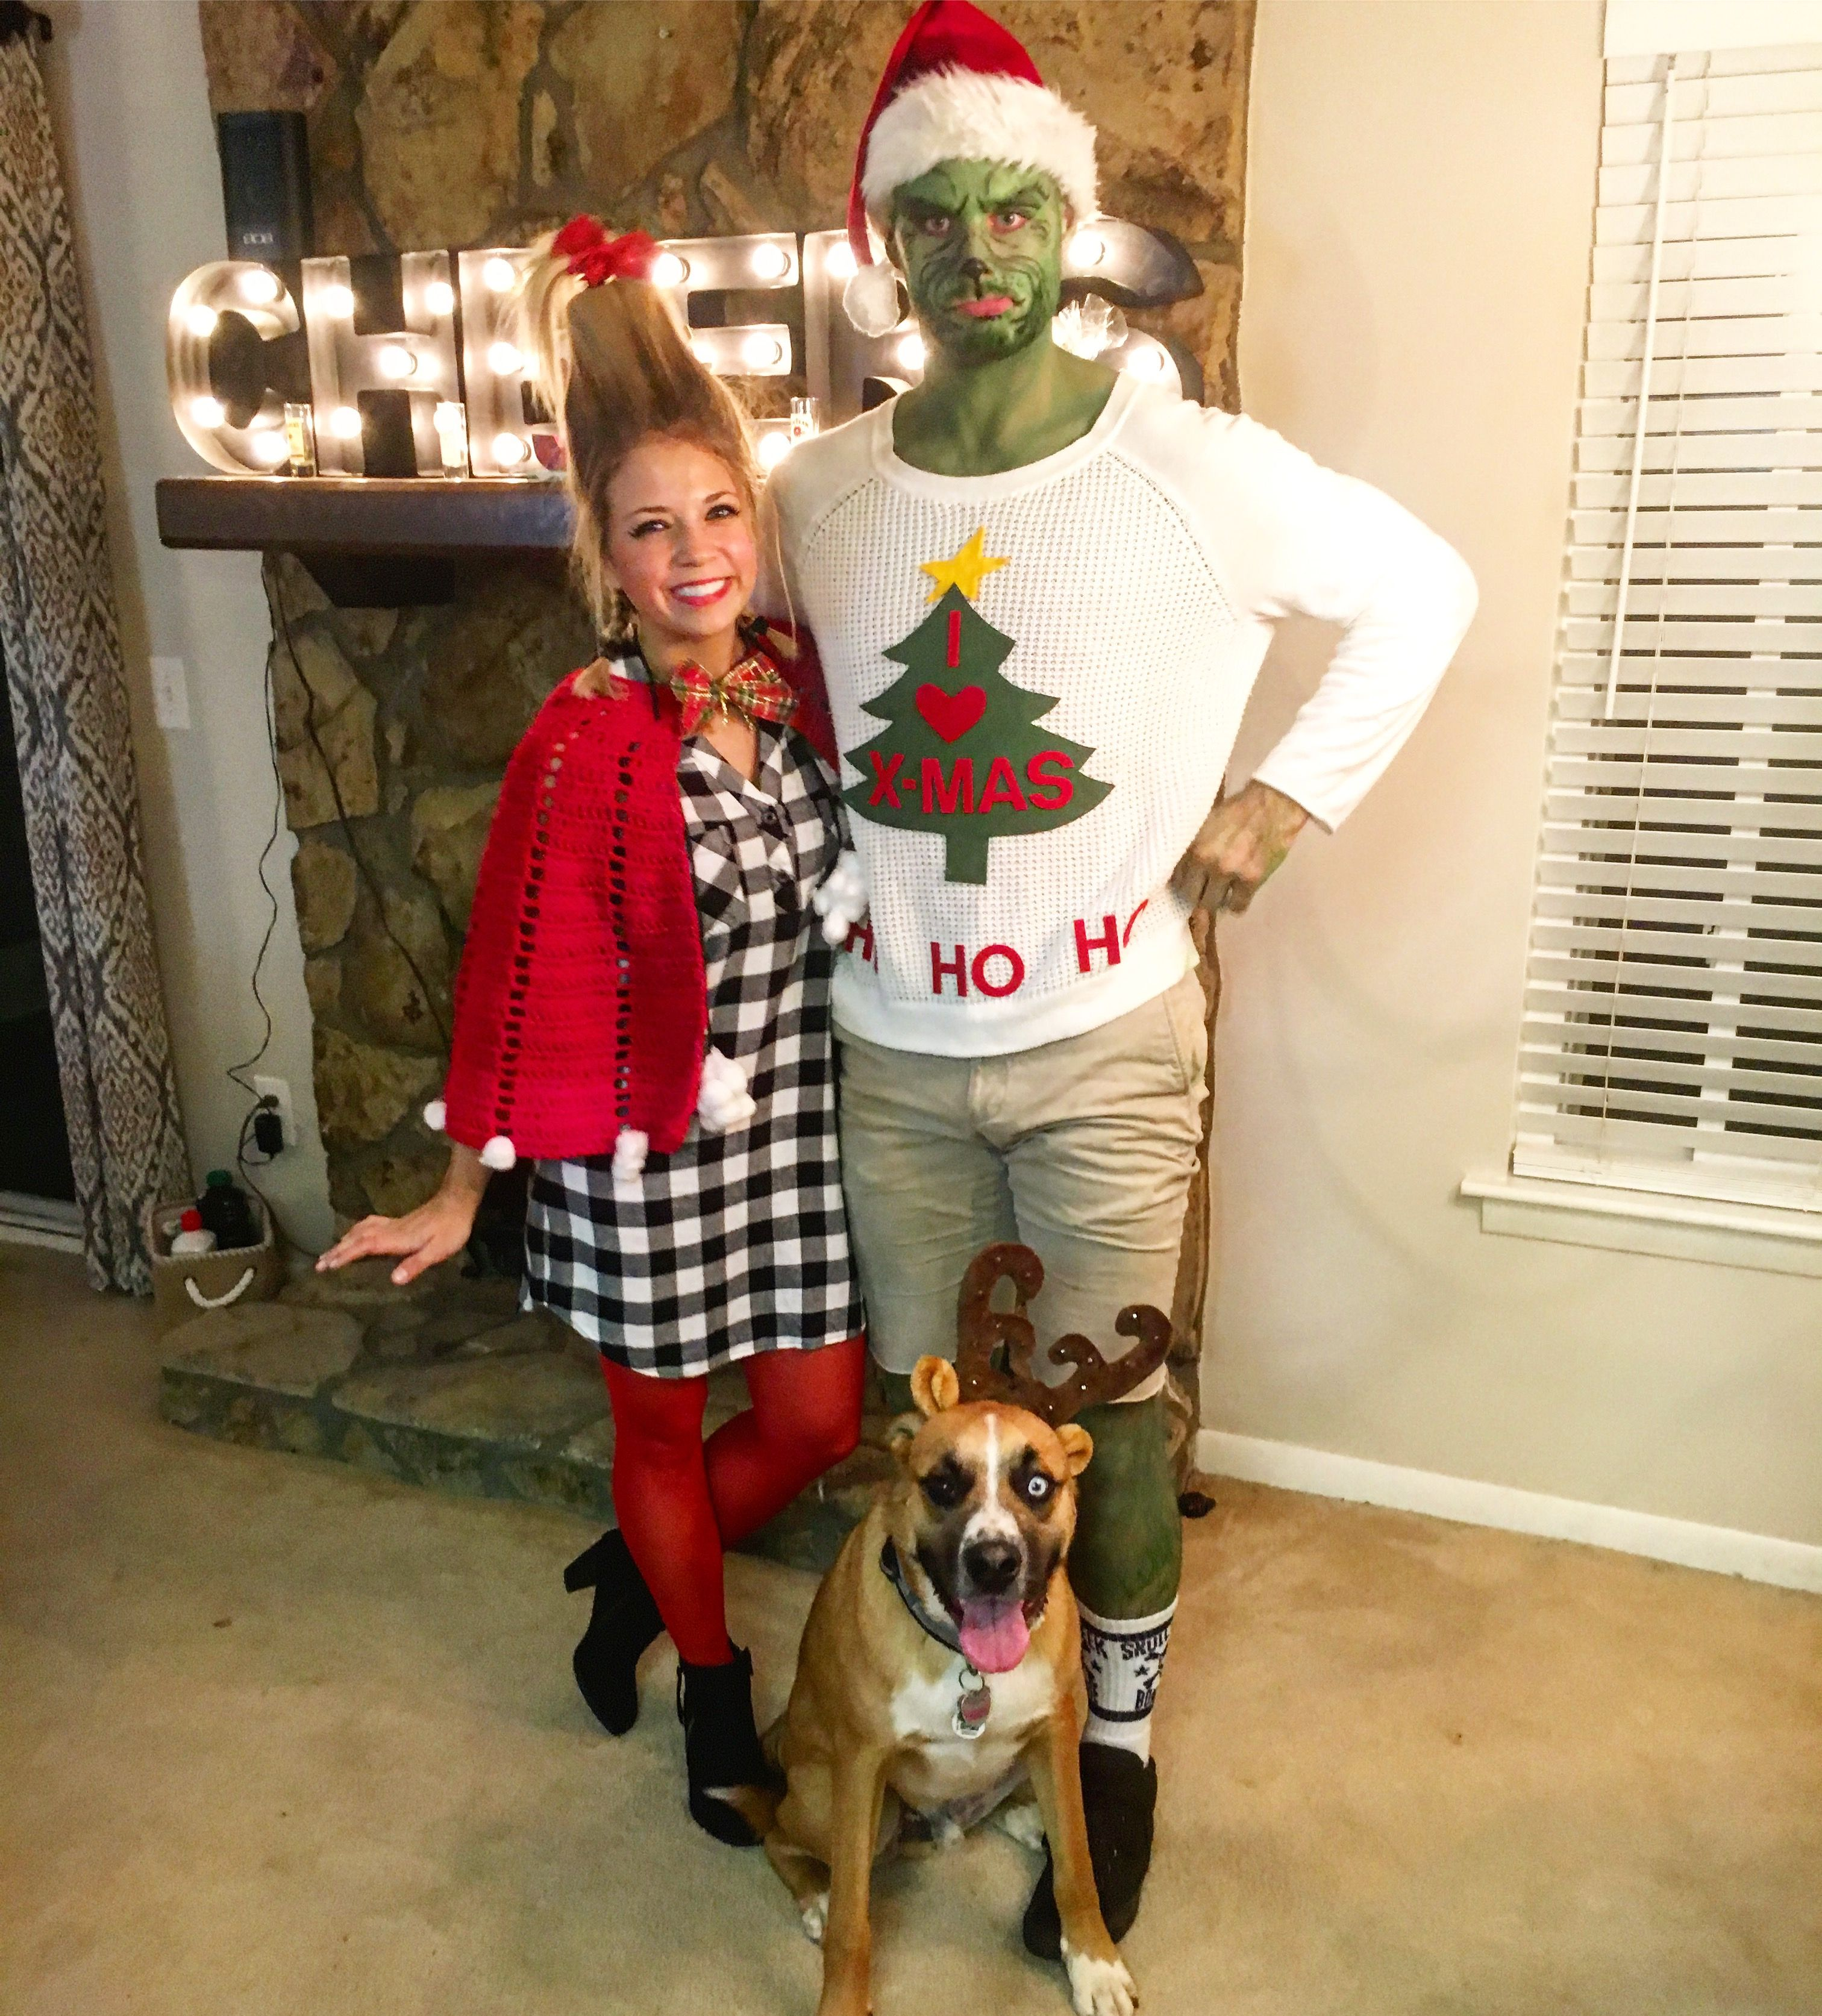 The Grinch Costume And Cindy Lou Who Costume Diy Grinch Cindylouwho Max Christmas Character Costumes Grinch Halloween Grinch Costumes